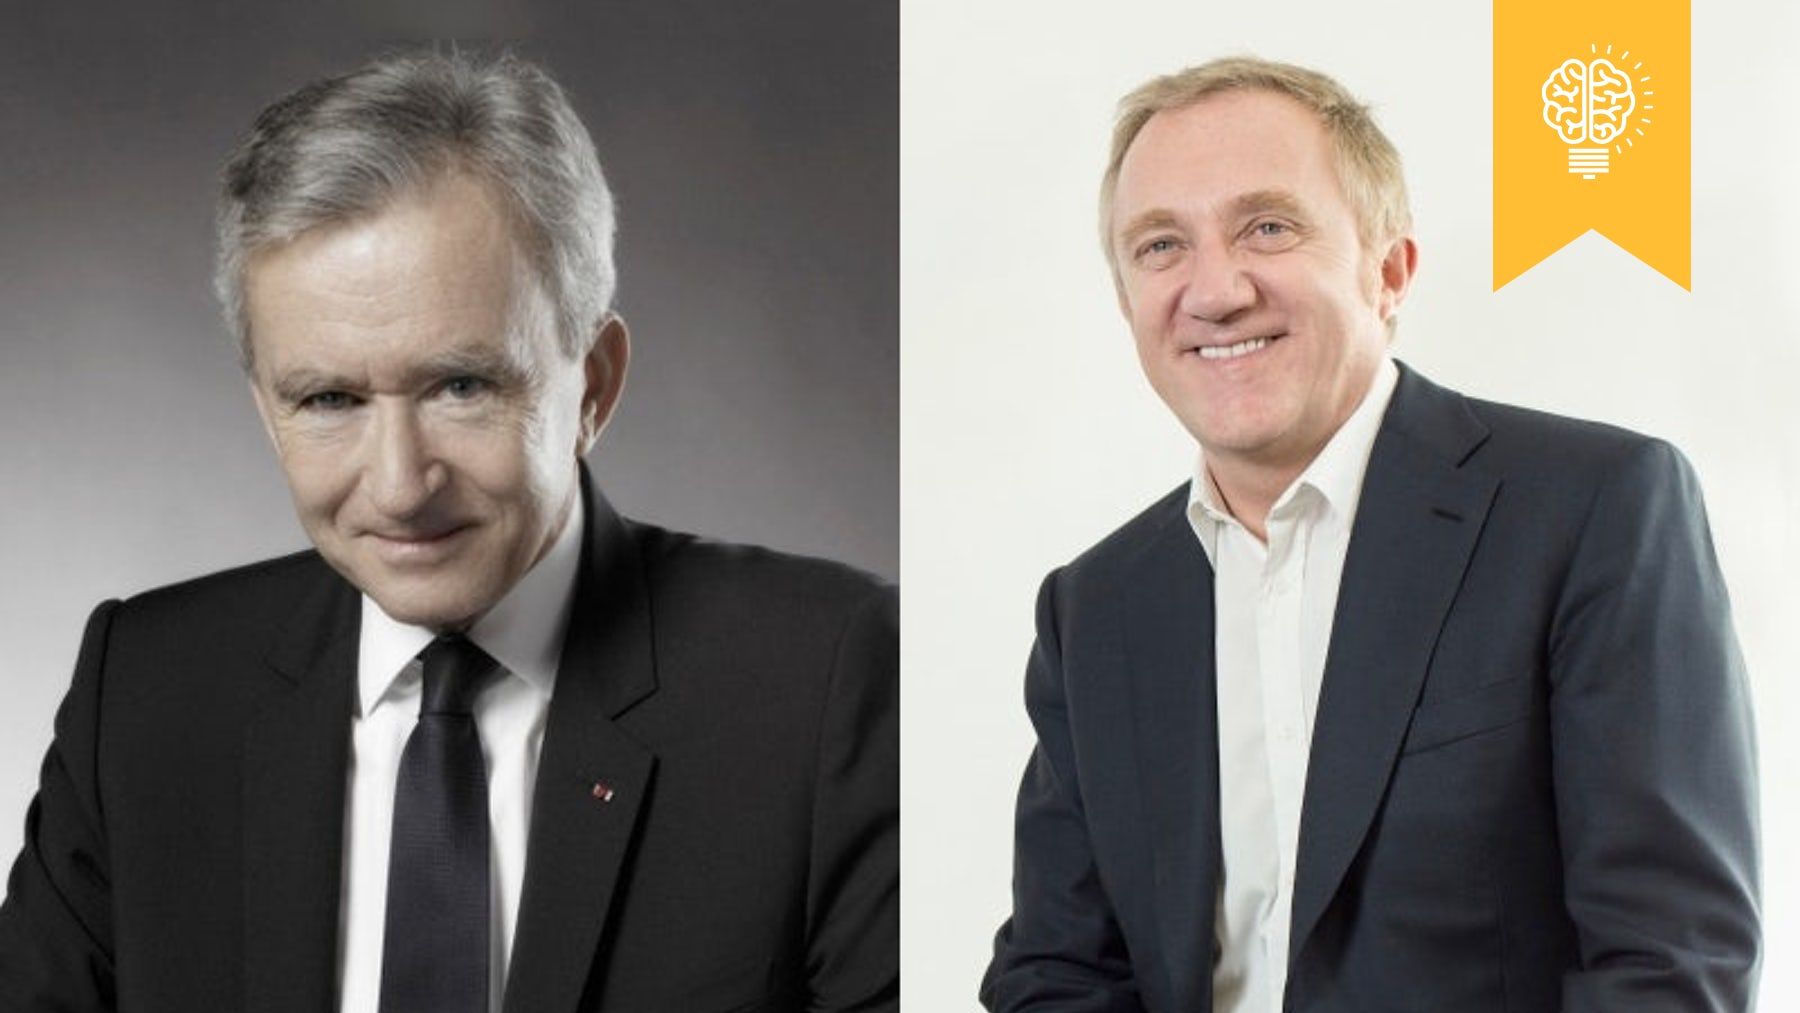 LVMH vs Kering: Which Player is Best Positioned for Growth?